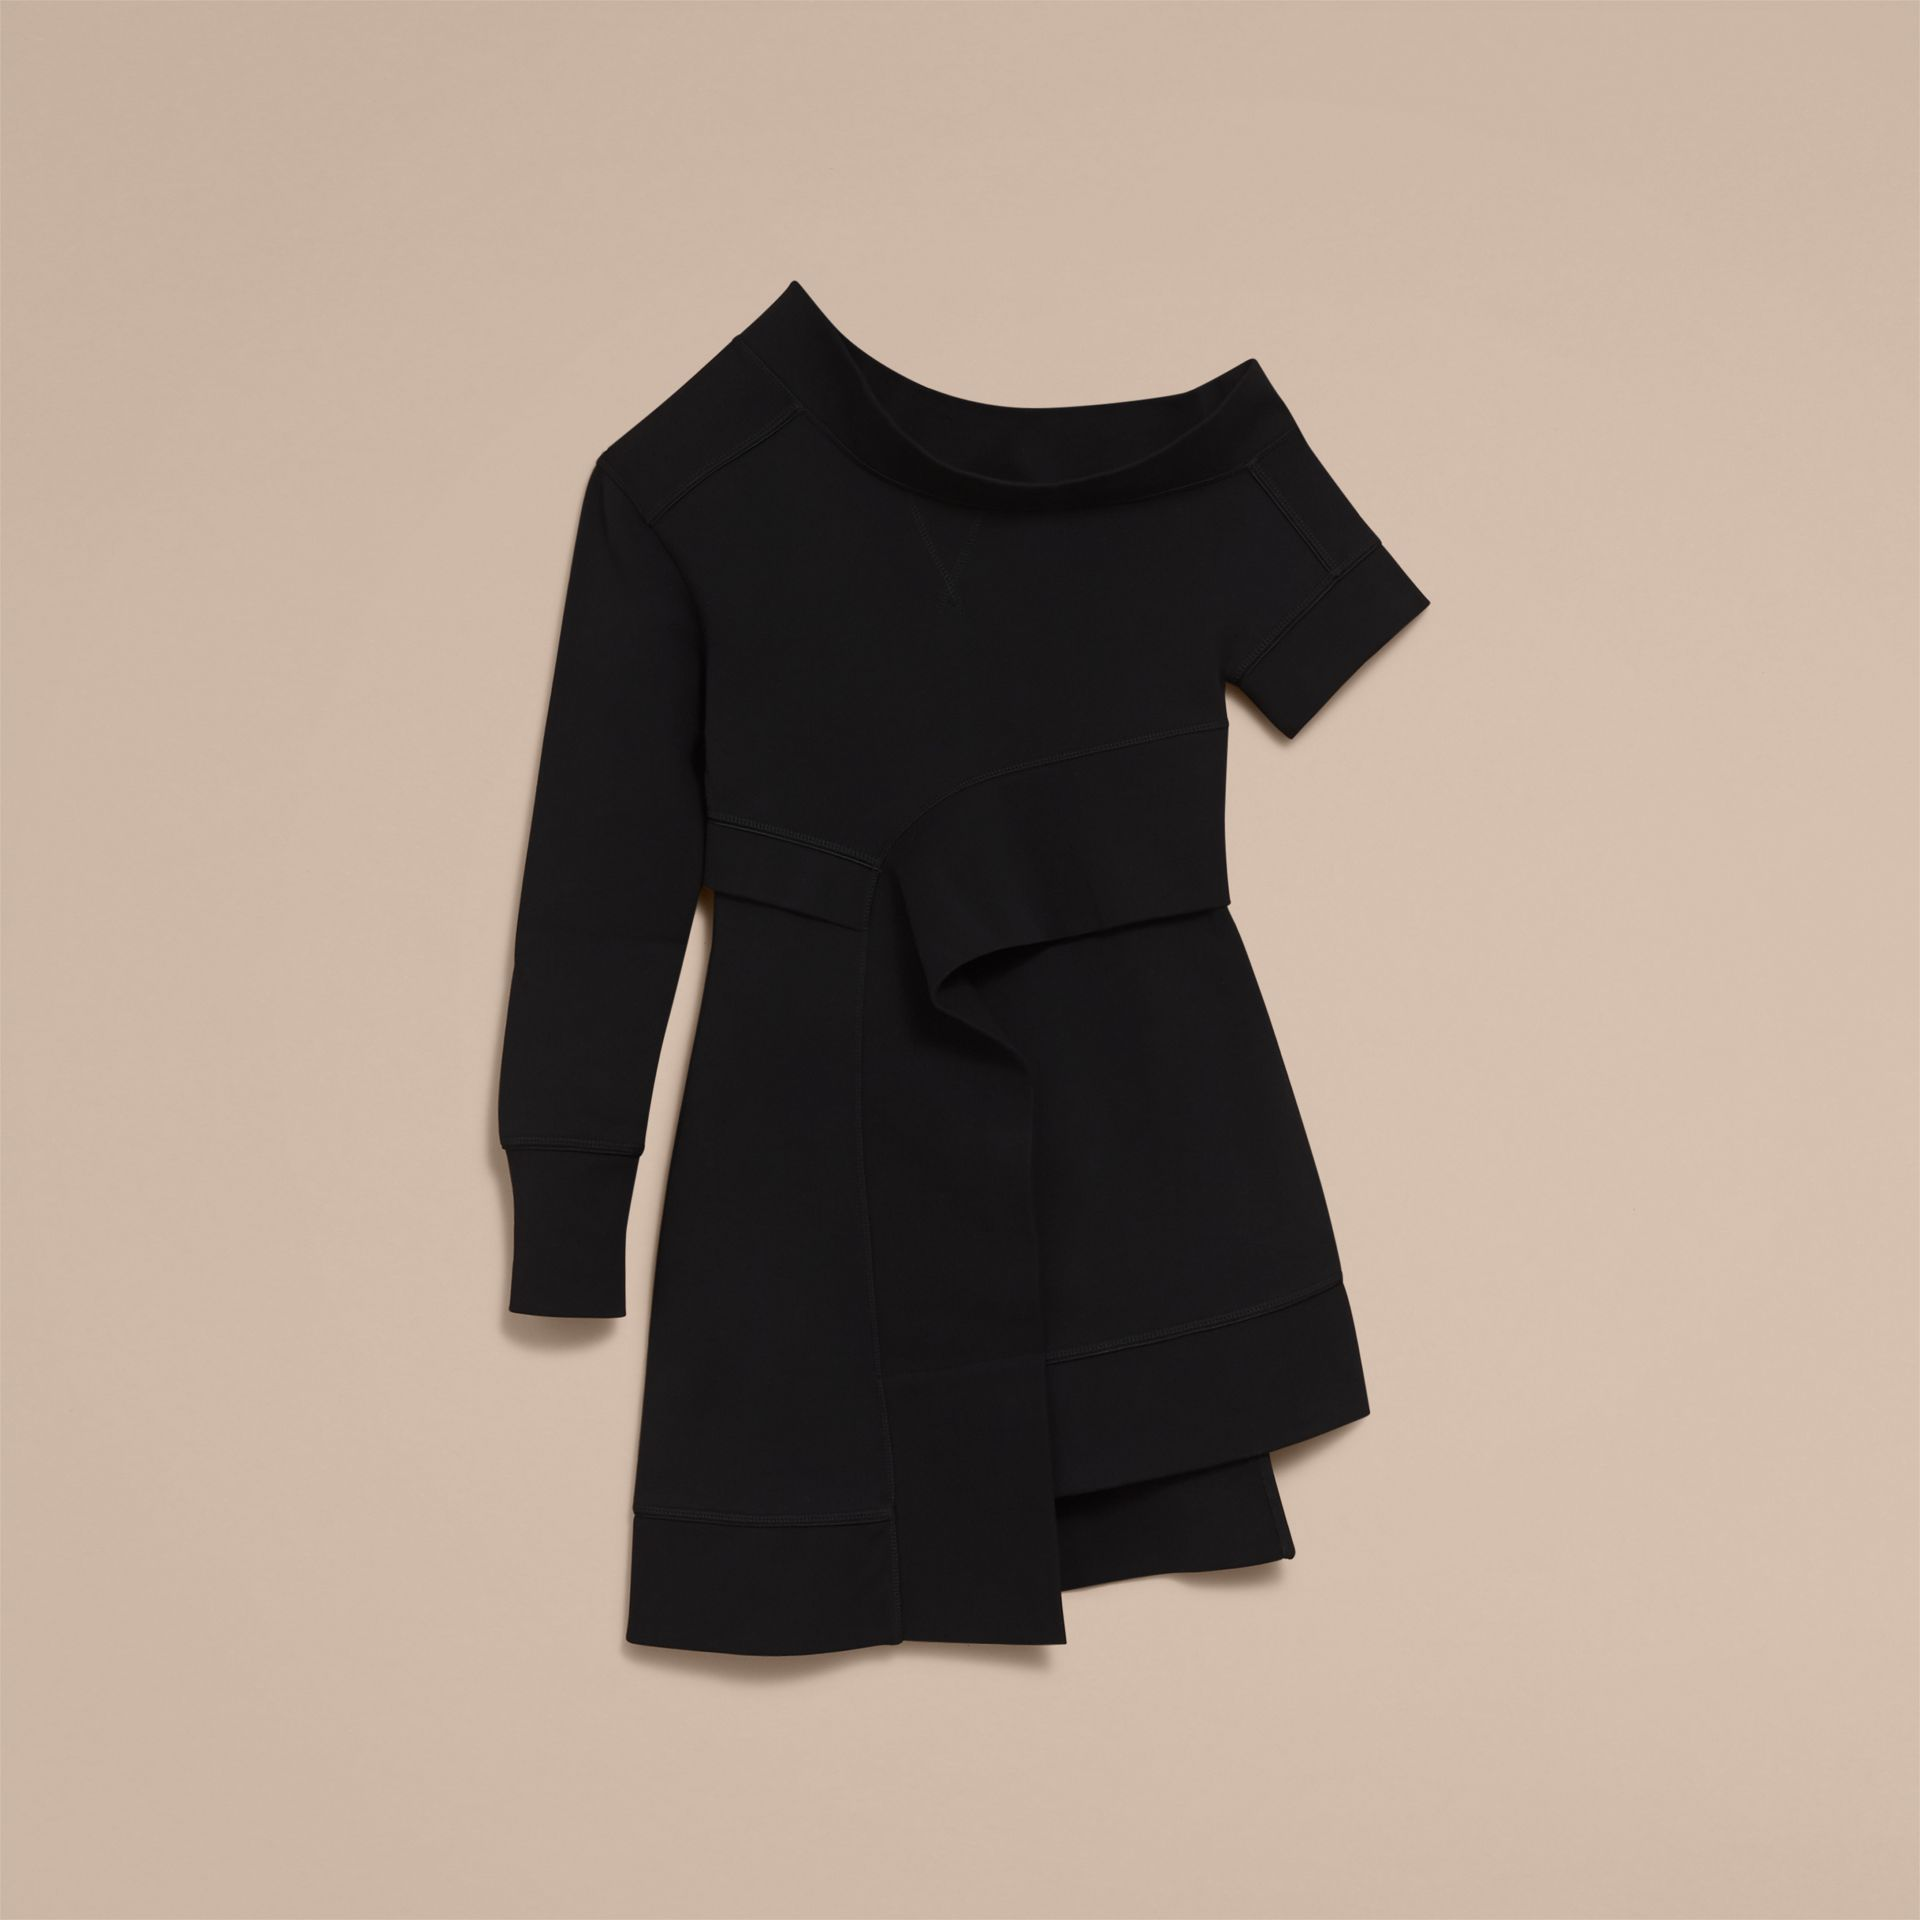 Asymmetric Sweatshirt Dress in Black - Women | Burberry - gallery image 4